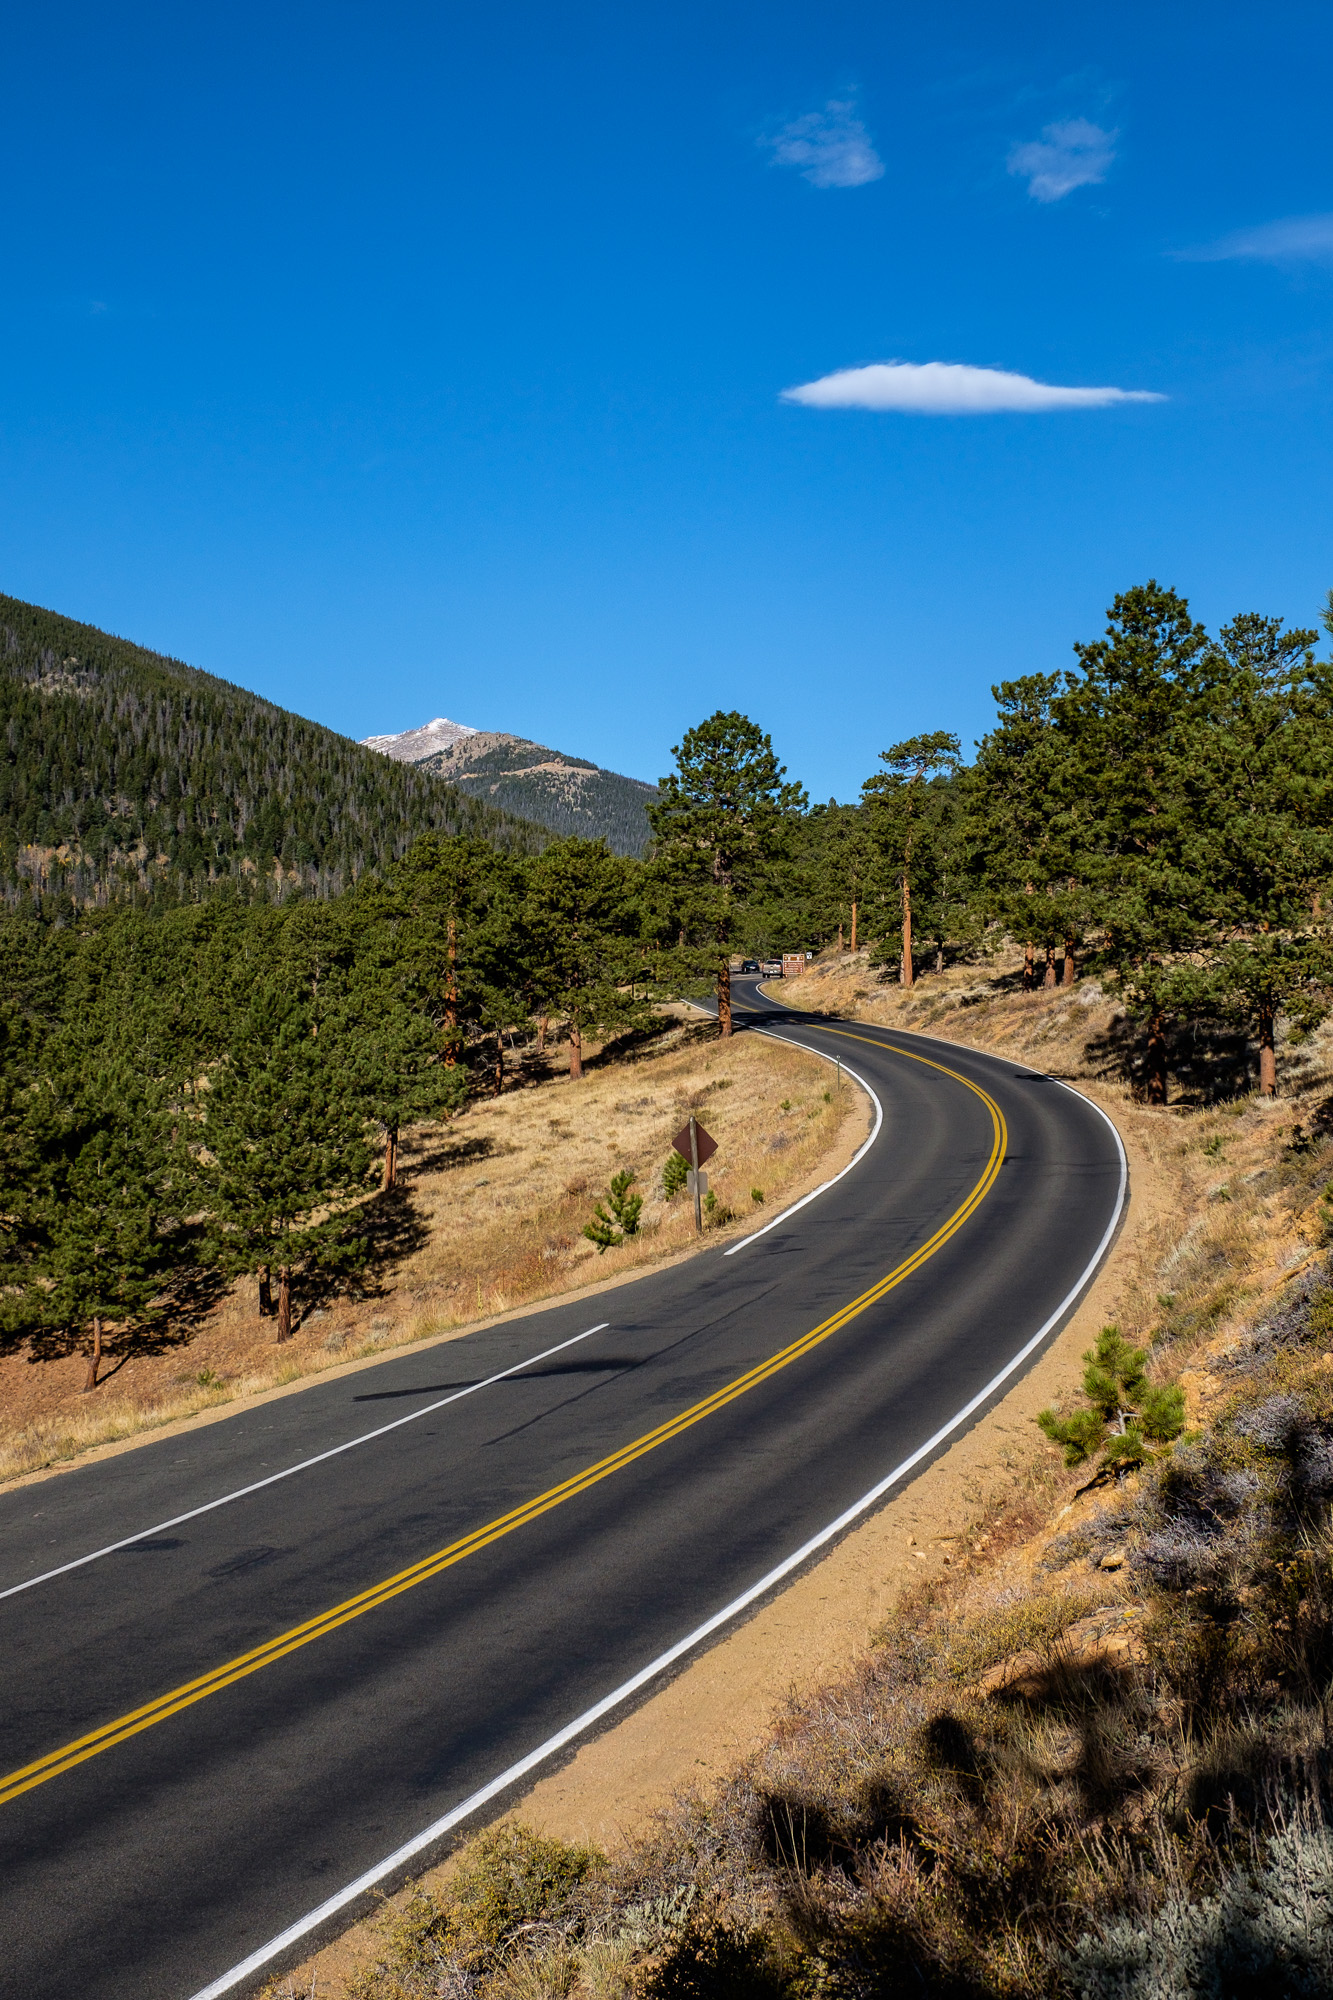 Cruising the park on beautiful scenic byways.